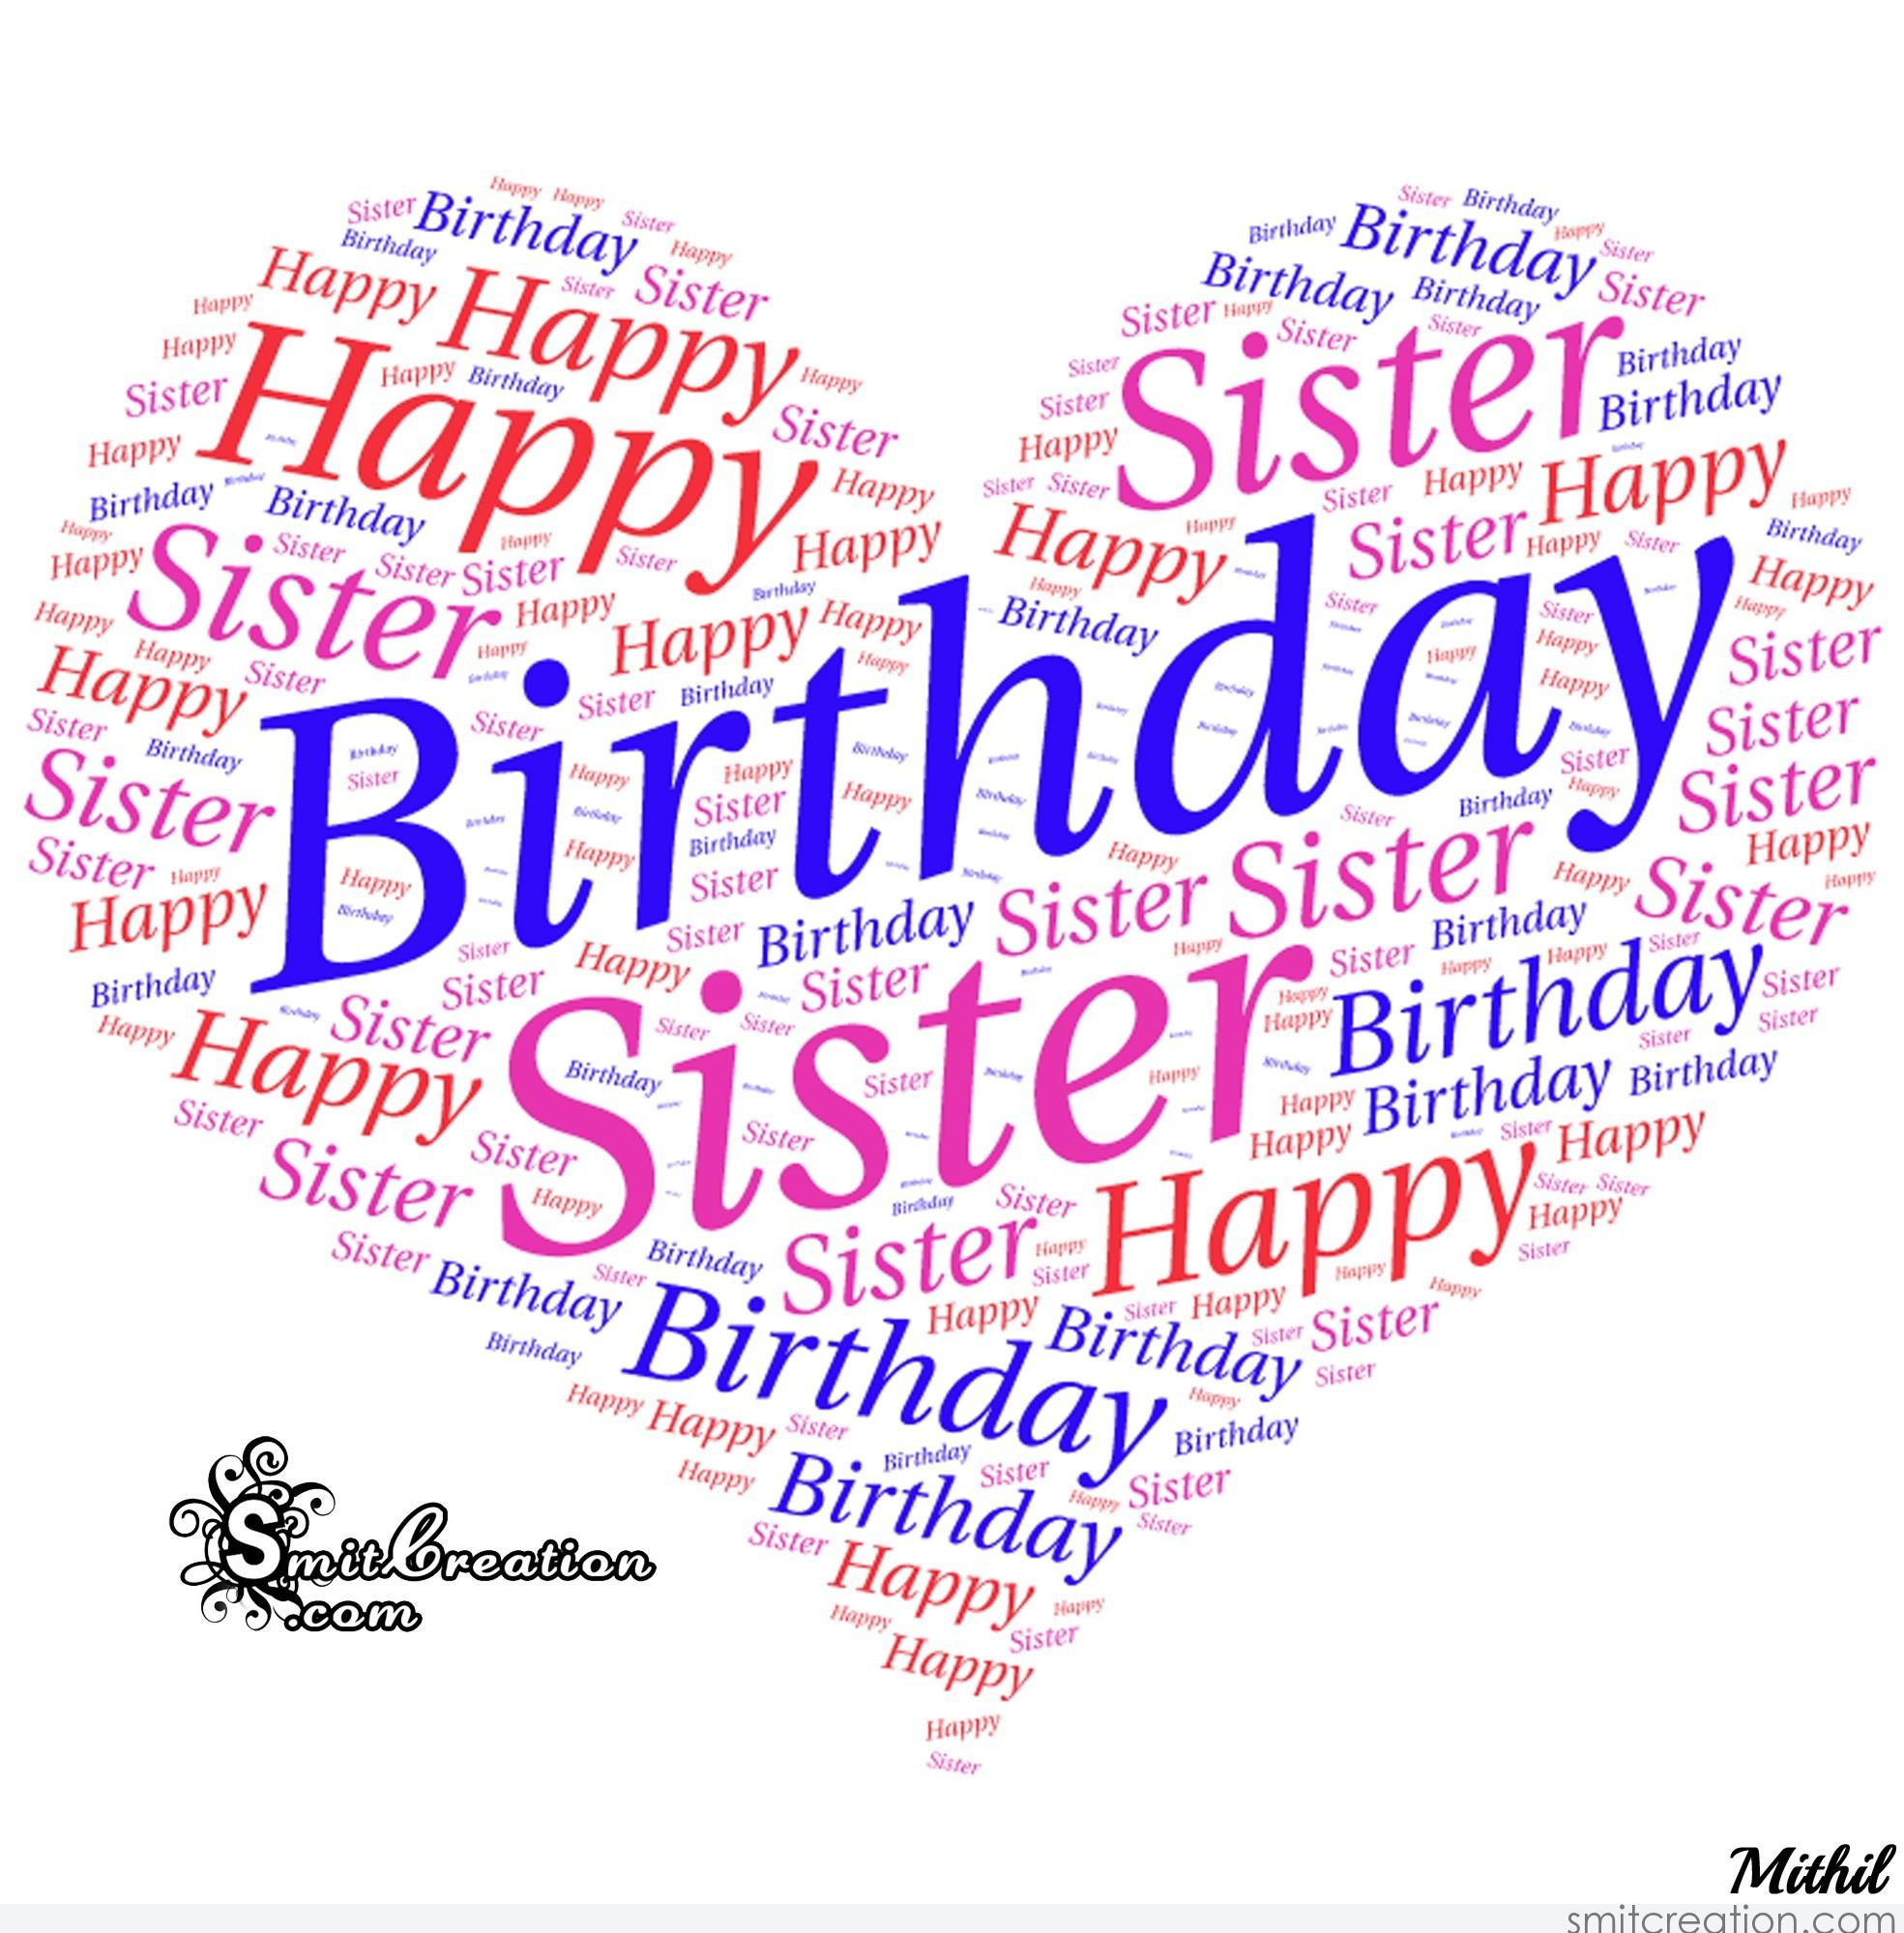 Birthday Wishes for Sister Pictures and Graphics ...